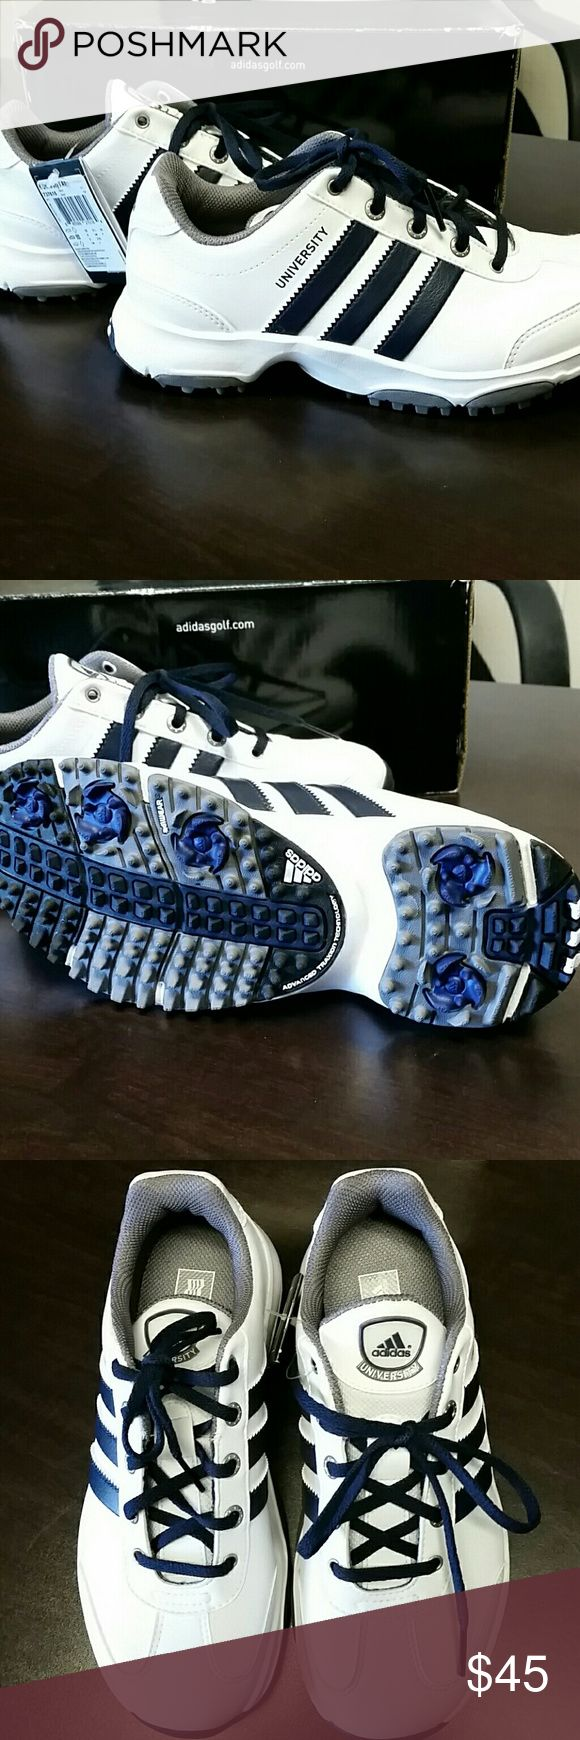 Kids Golf Shoes Brand new kids golf shoes. White & navy. I have 3 sizes available: 1 1/2, 2 1/2, and 3. Adidas Shoes Sneakers